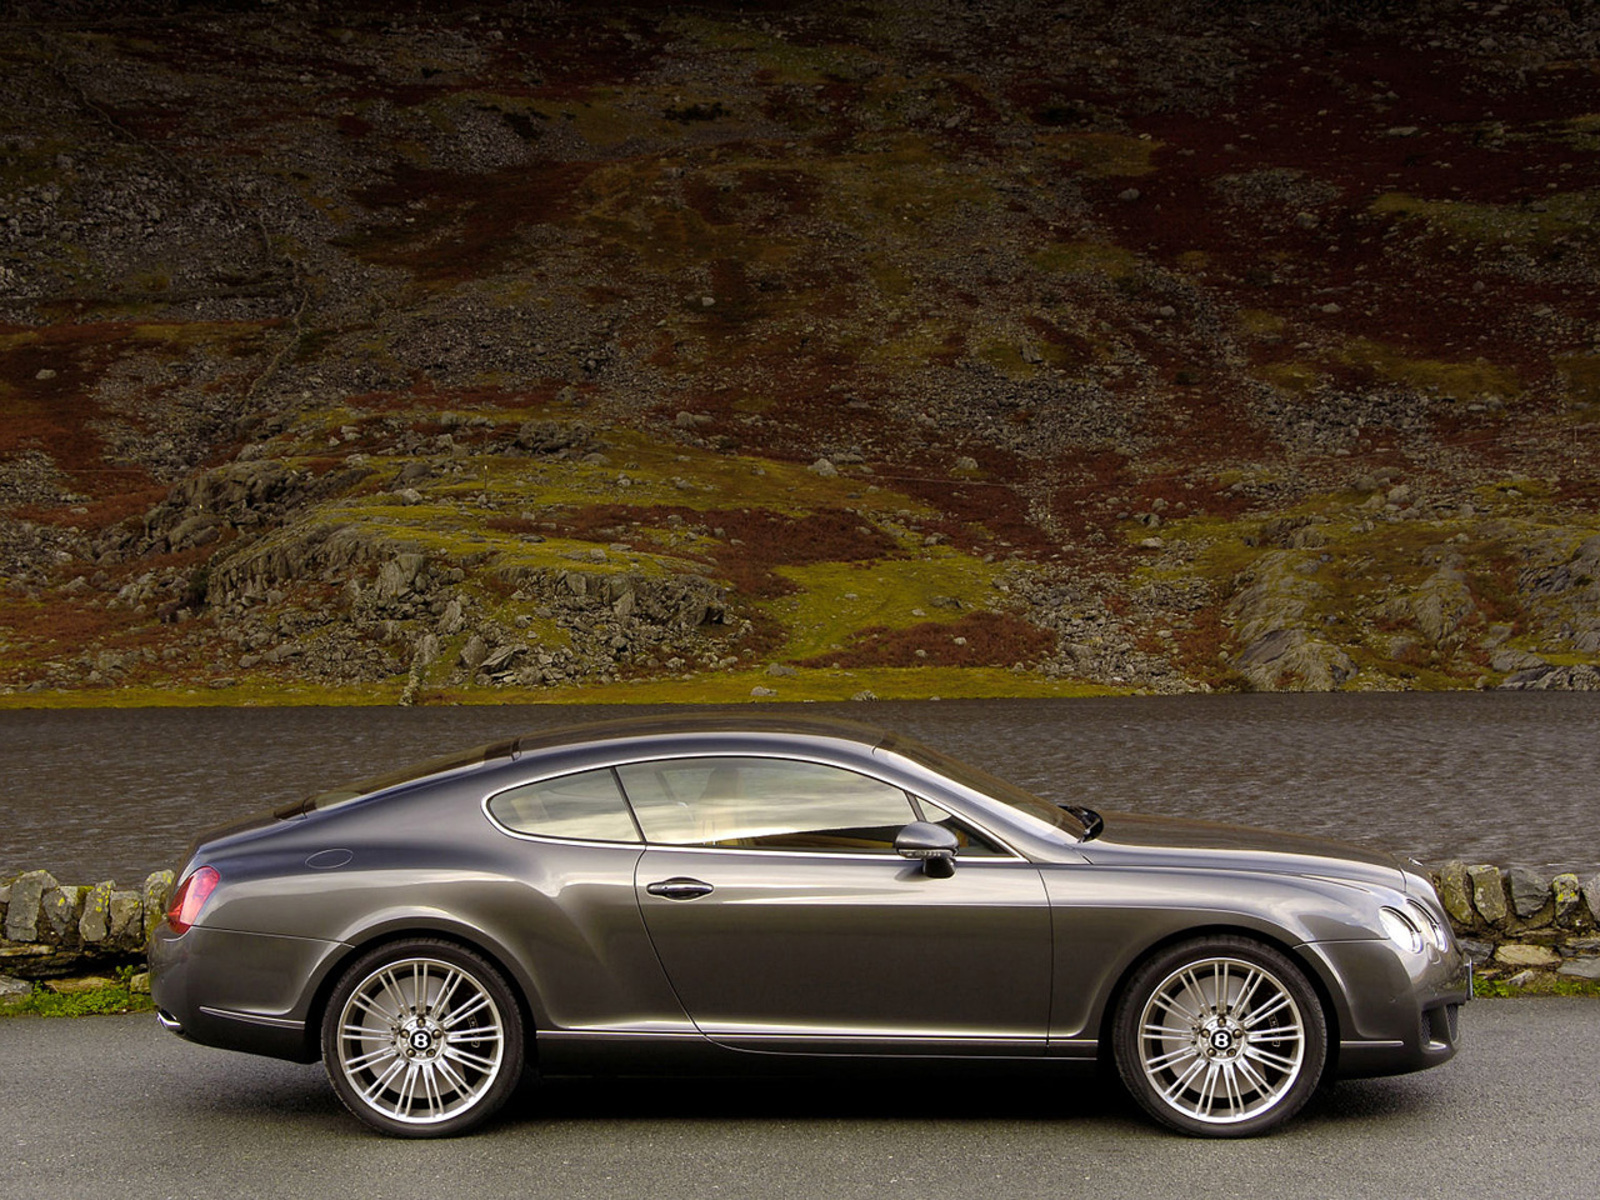 2012 Bentley Continental GT Speed Side (Photo 5 of 6)